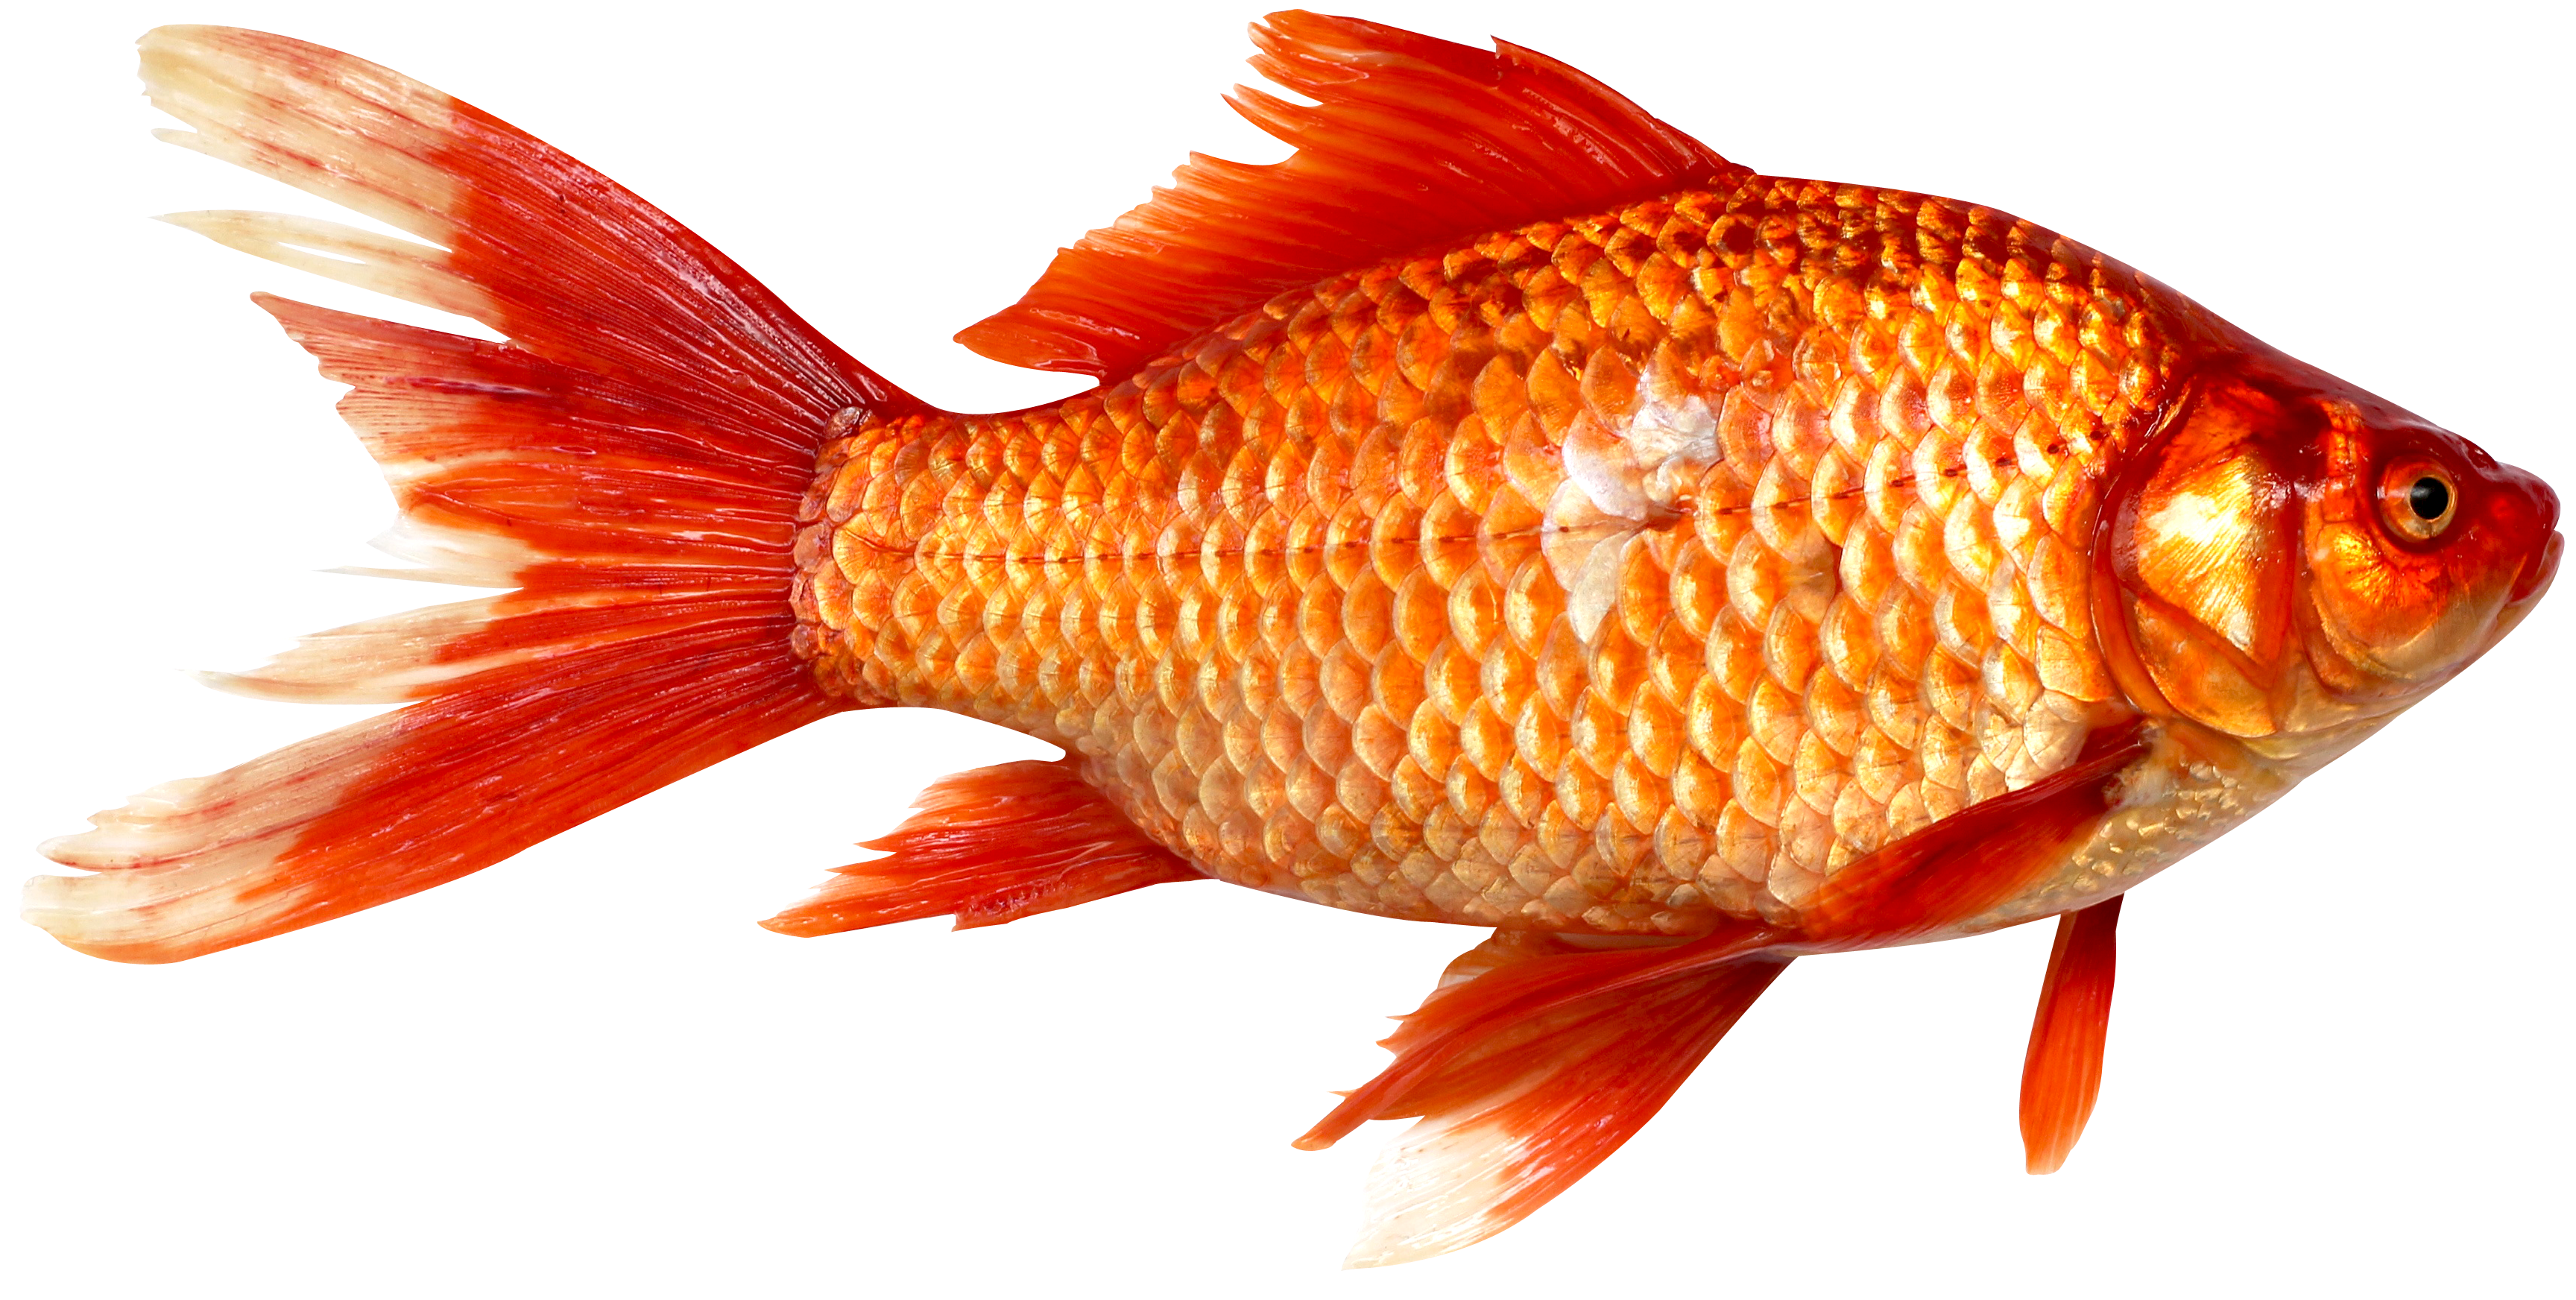 Fish png image pngpix for What fish is this